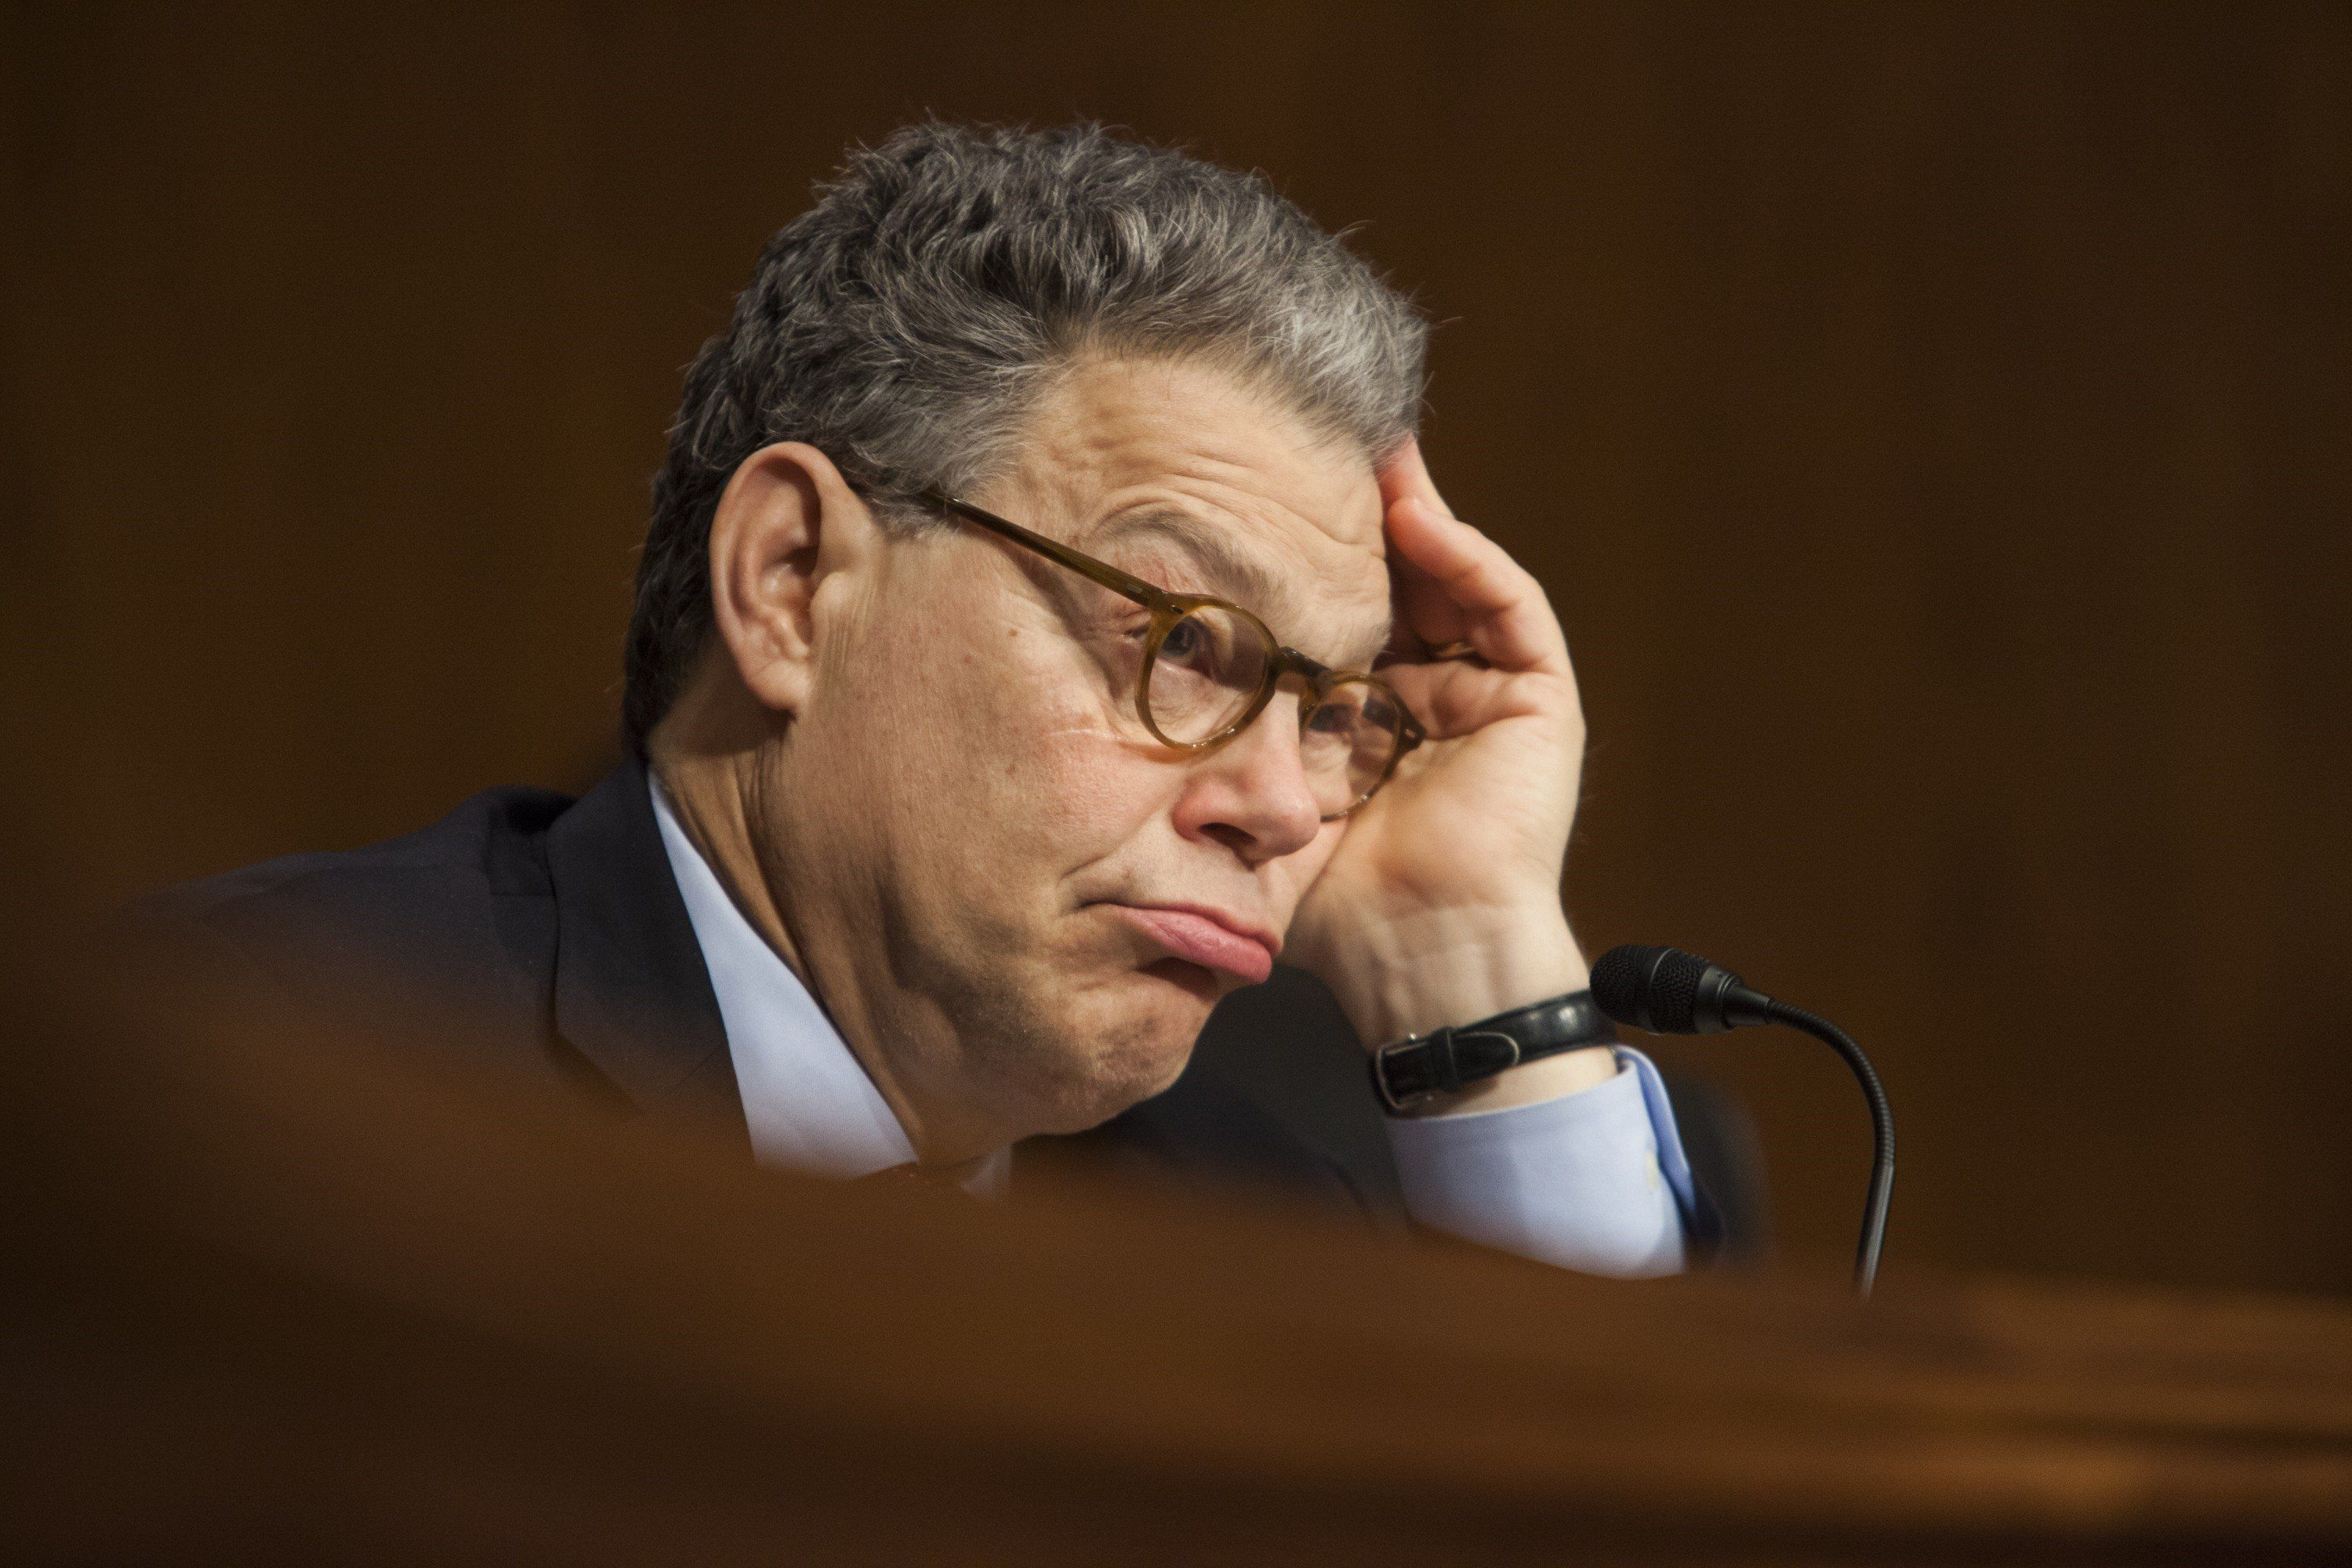 WASHINGTON, USA - JUNE 10: Senator Al Franken listens to testimony from witnesses during a Health, Education, Labor, and Pensions Committee hearing on how to better develop information and records exchange in the healthcare industry in Washington, USA on June 9, 2015. (Photo by Samuel Corum/Anadolu Agency/Getty Images)